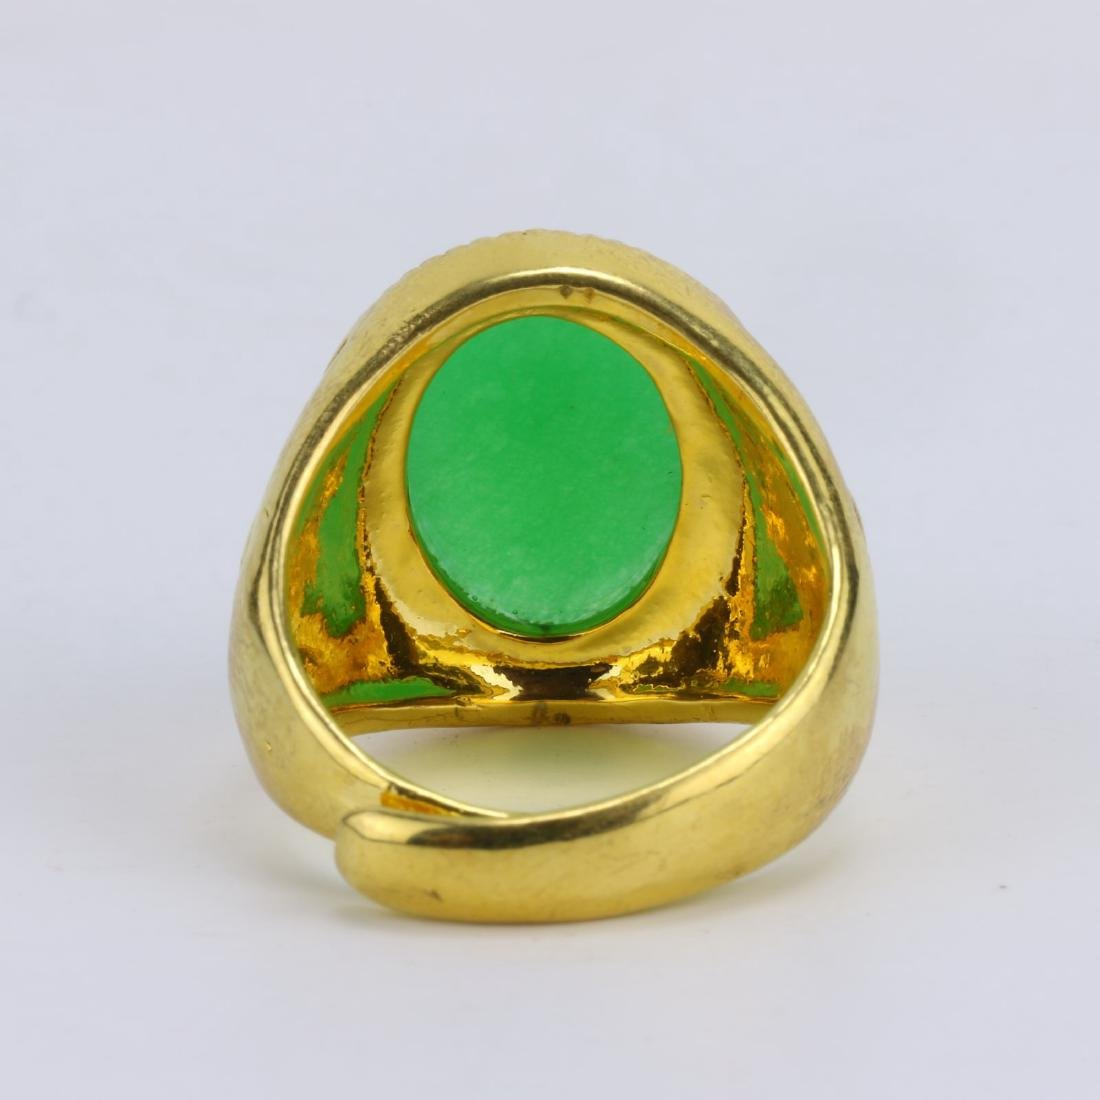 A GREEN JADE OR JADEITE MEN'S RING - 3